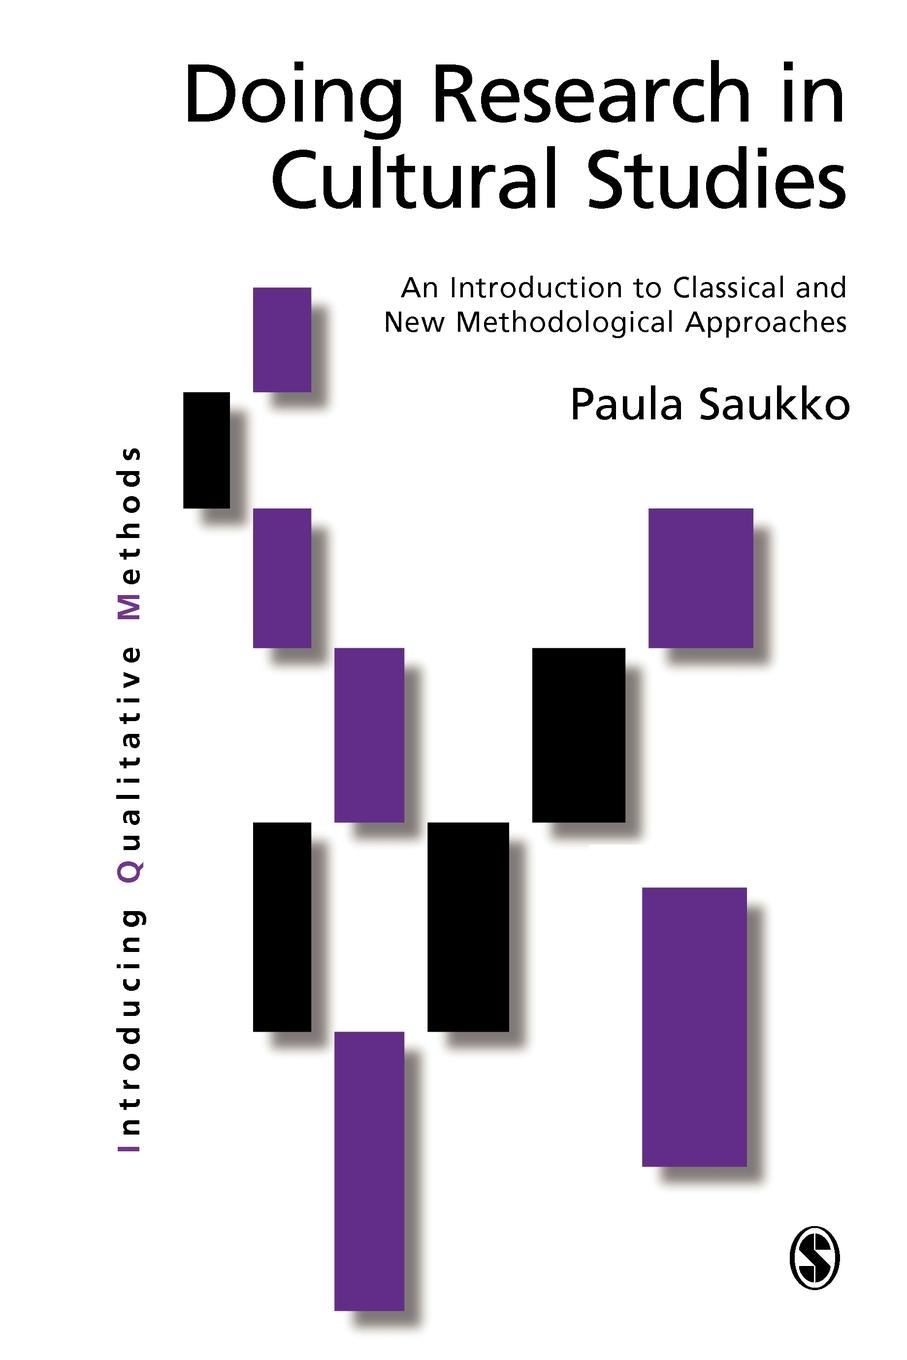 Paula Saukko Doing Research in Cultural Studies. An Introduction to Classical and New Methodological Approaches